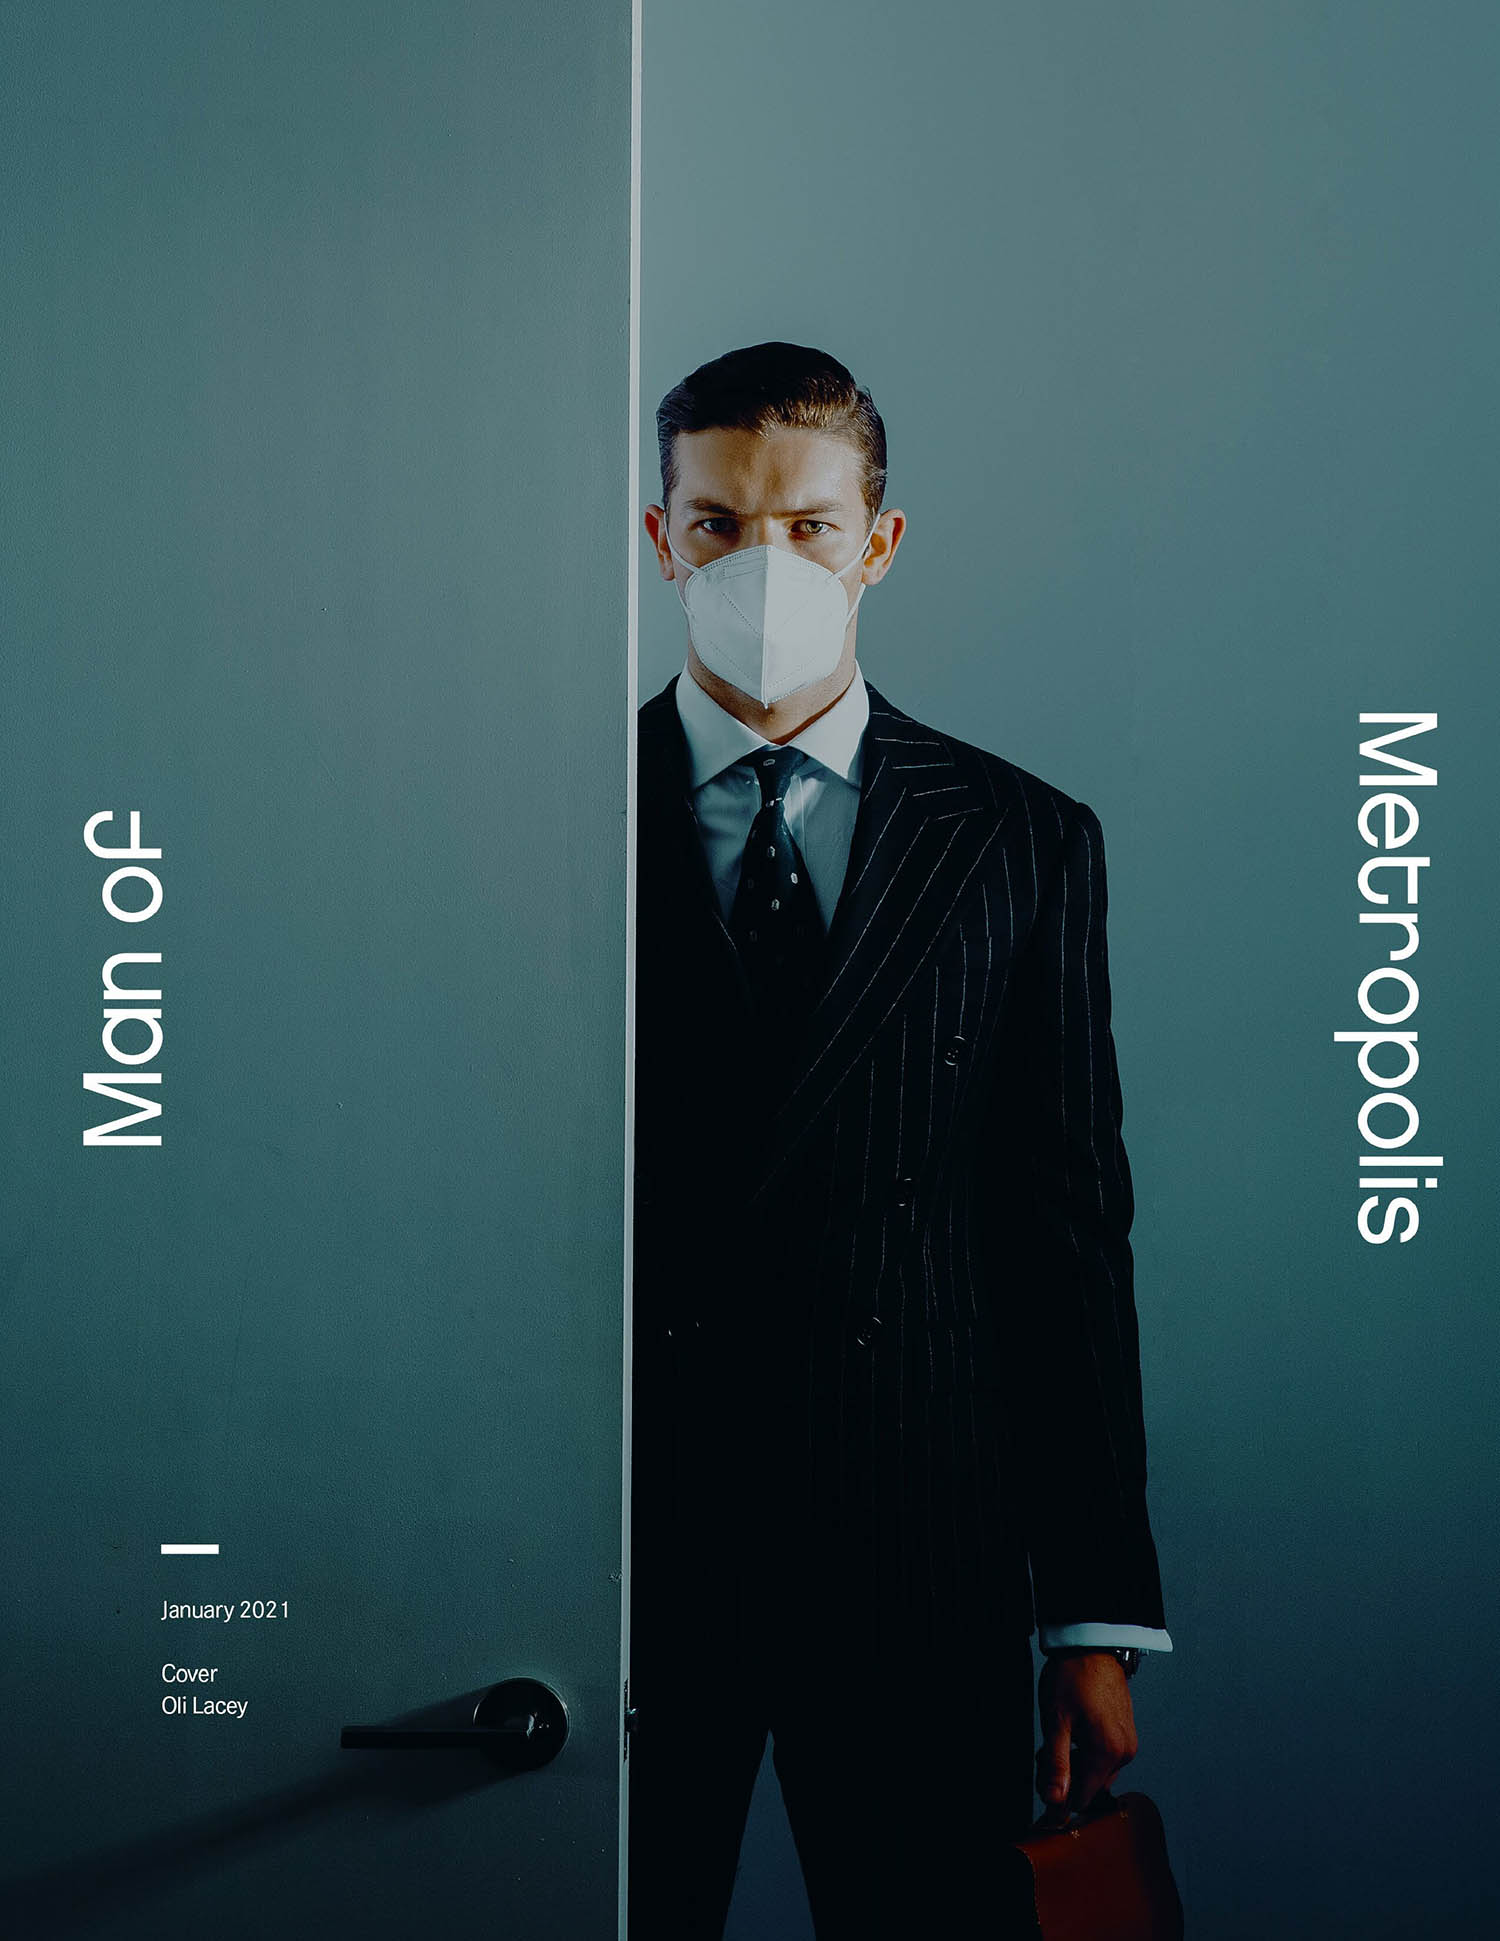 Oli Lacey covers Man of Metropolis January 2021 by Austin Augie